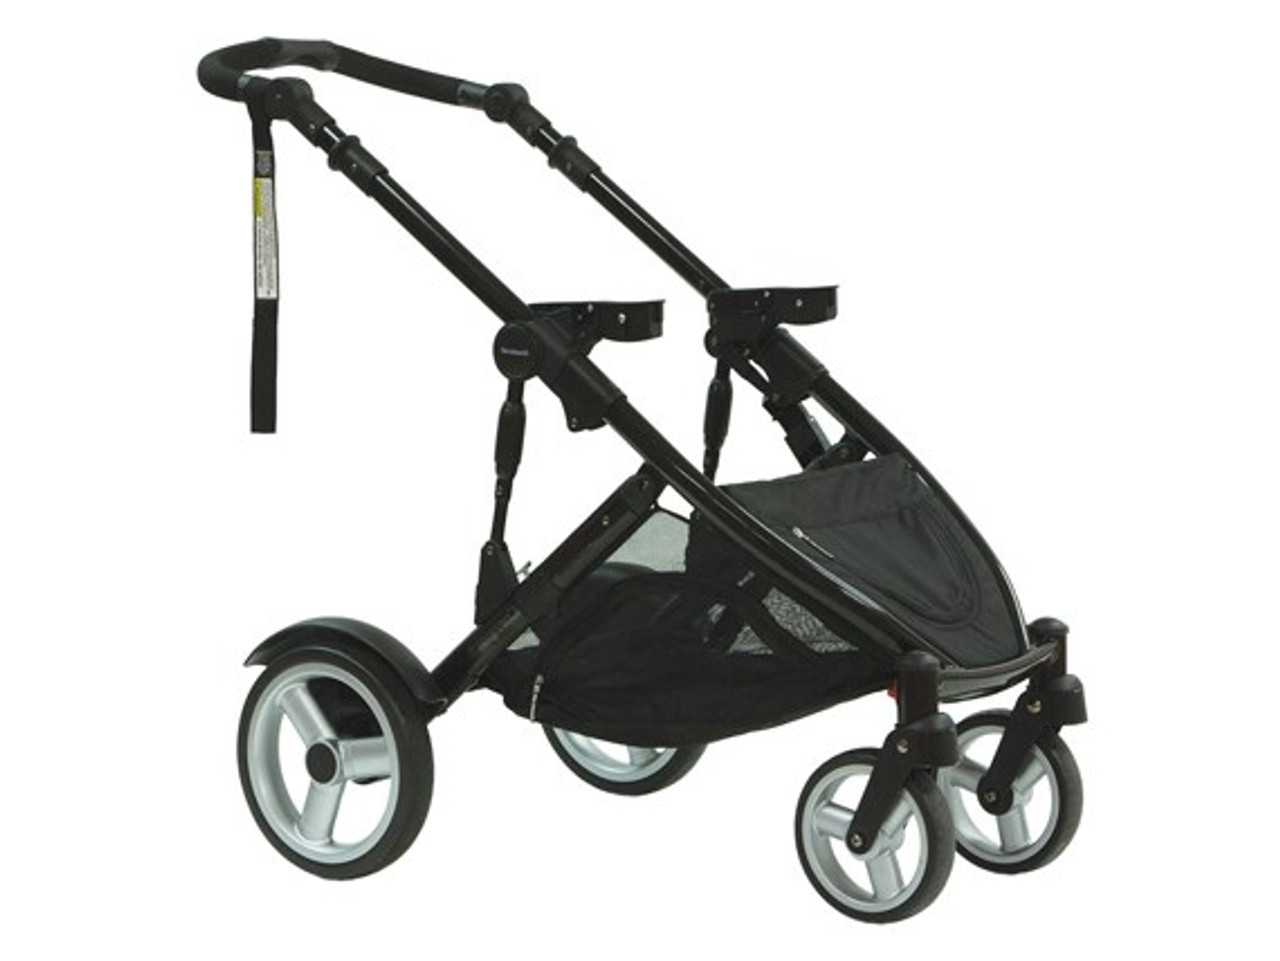 Strider Click & Go Receiver - Transform your Strider stroller to accommodate a Britax Unity Infant Carrier.